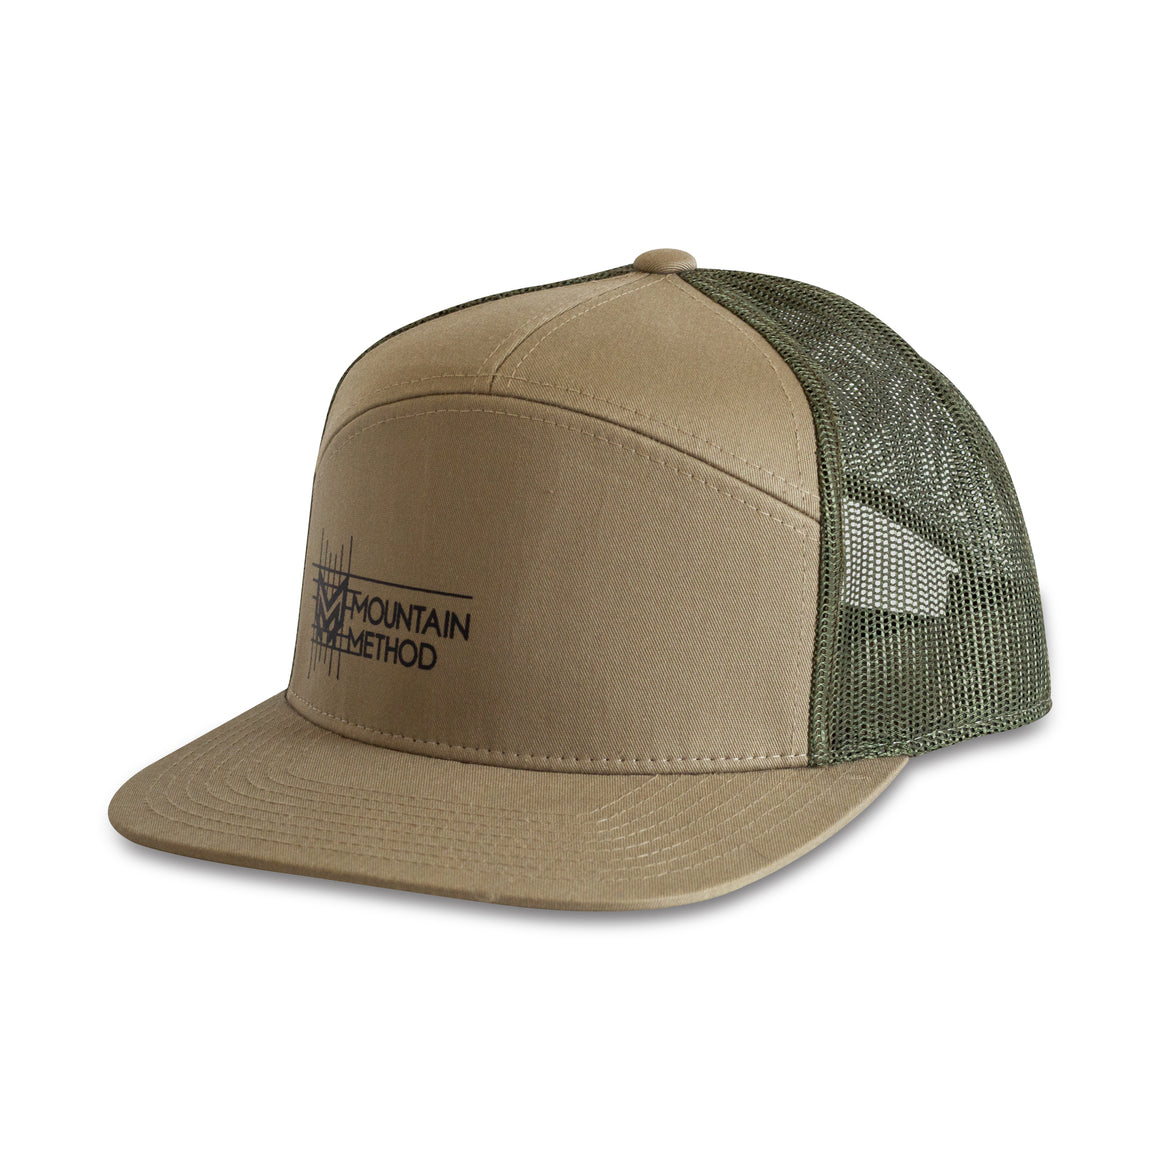 Mountain Method - Johnnie Creek 7 Panel Hat - Green - Clothing